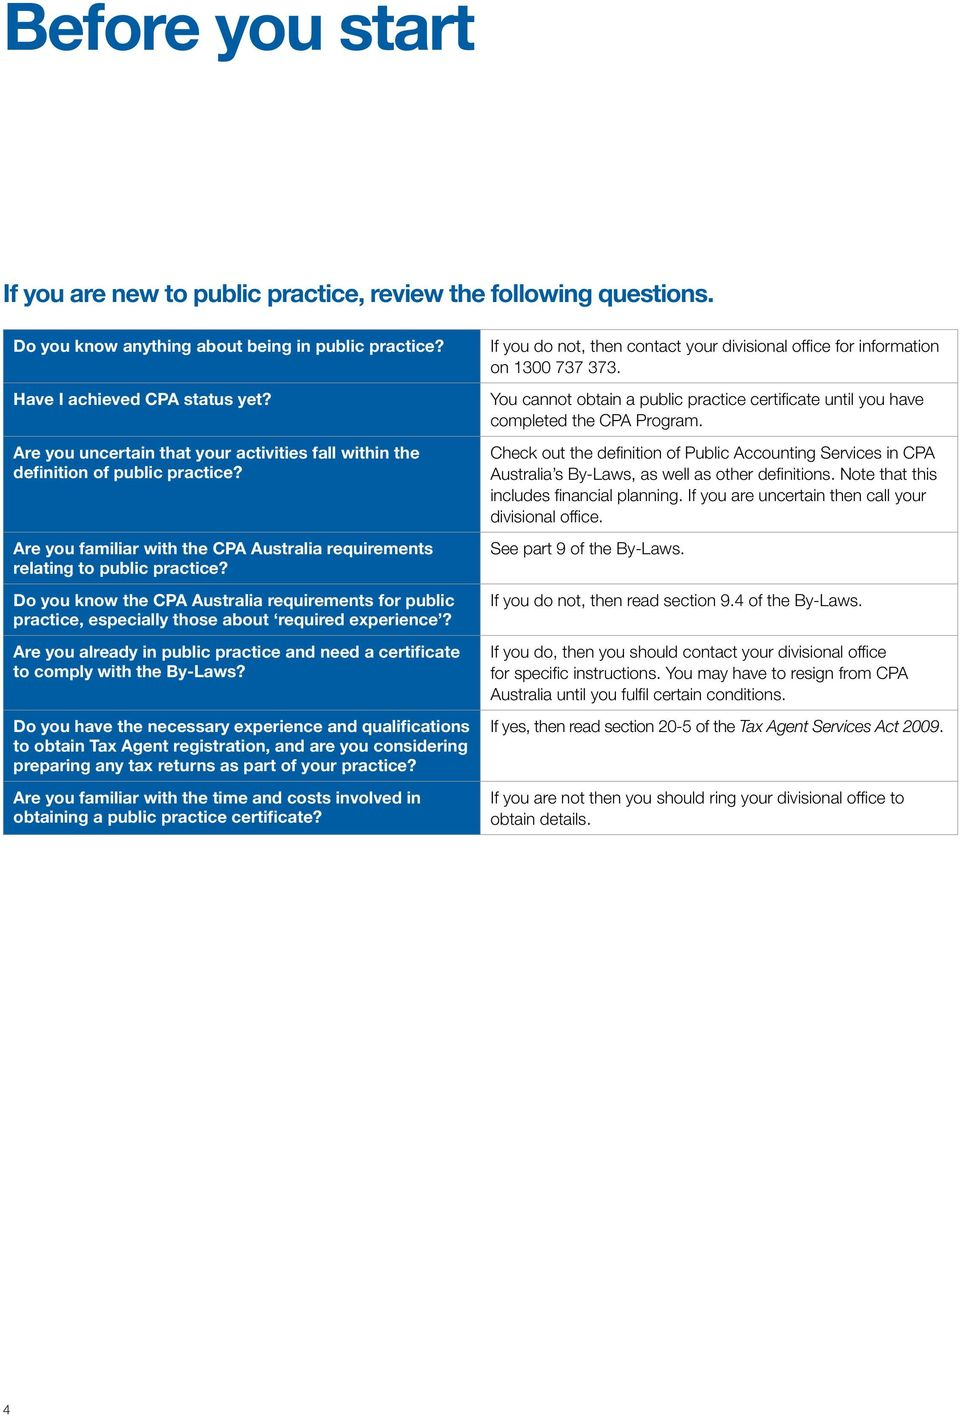 Do you know the CPA Australia requirements for public practice, especially those about required experience? Are you already in public practice and need a certificate to comply with the By-Laws?